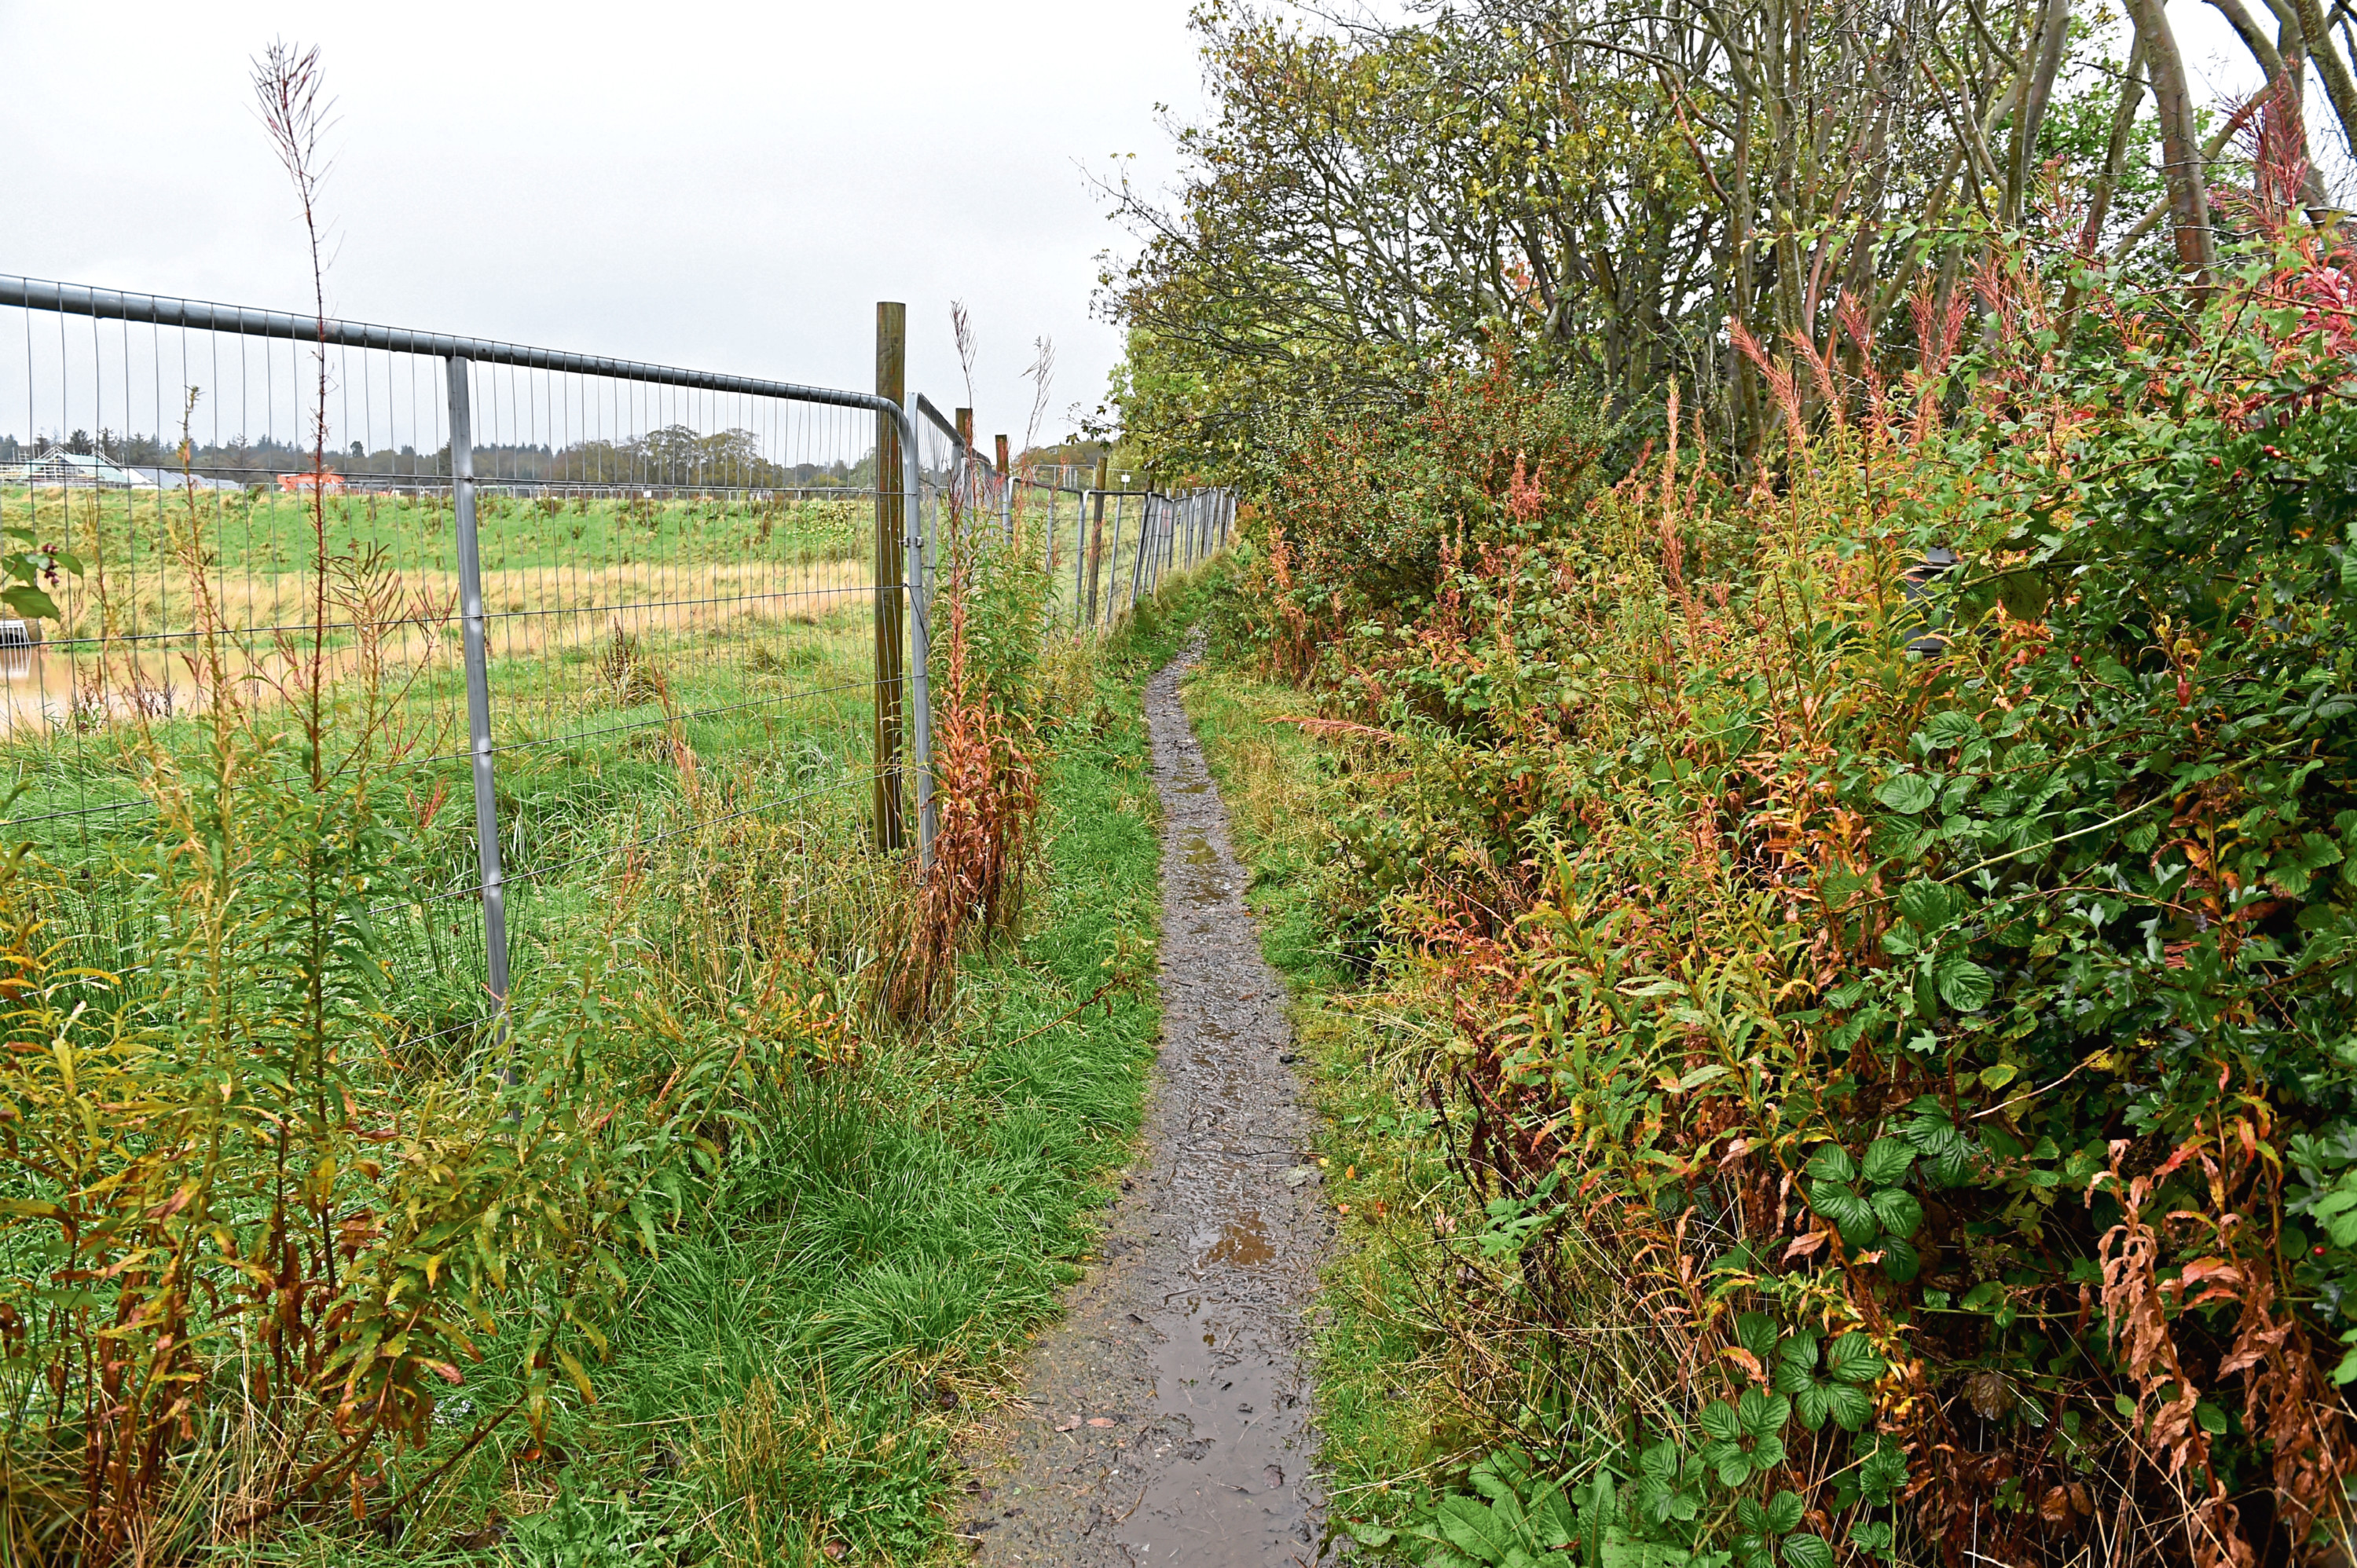 The paths around the development are meant to be improved but concerns have been raised that this is not happening